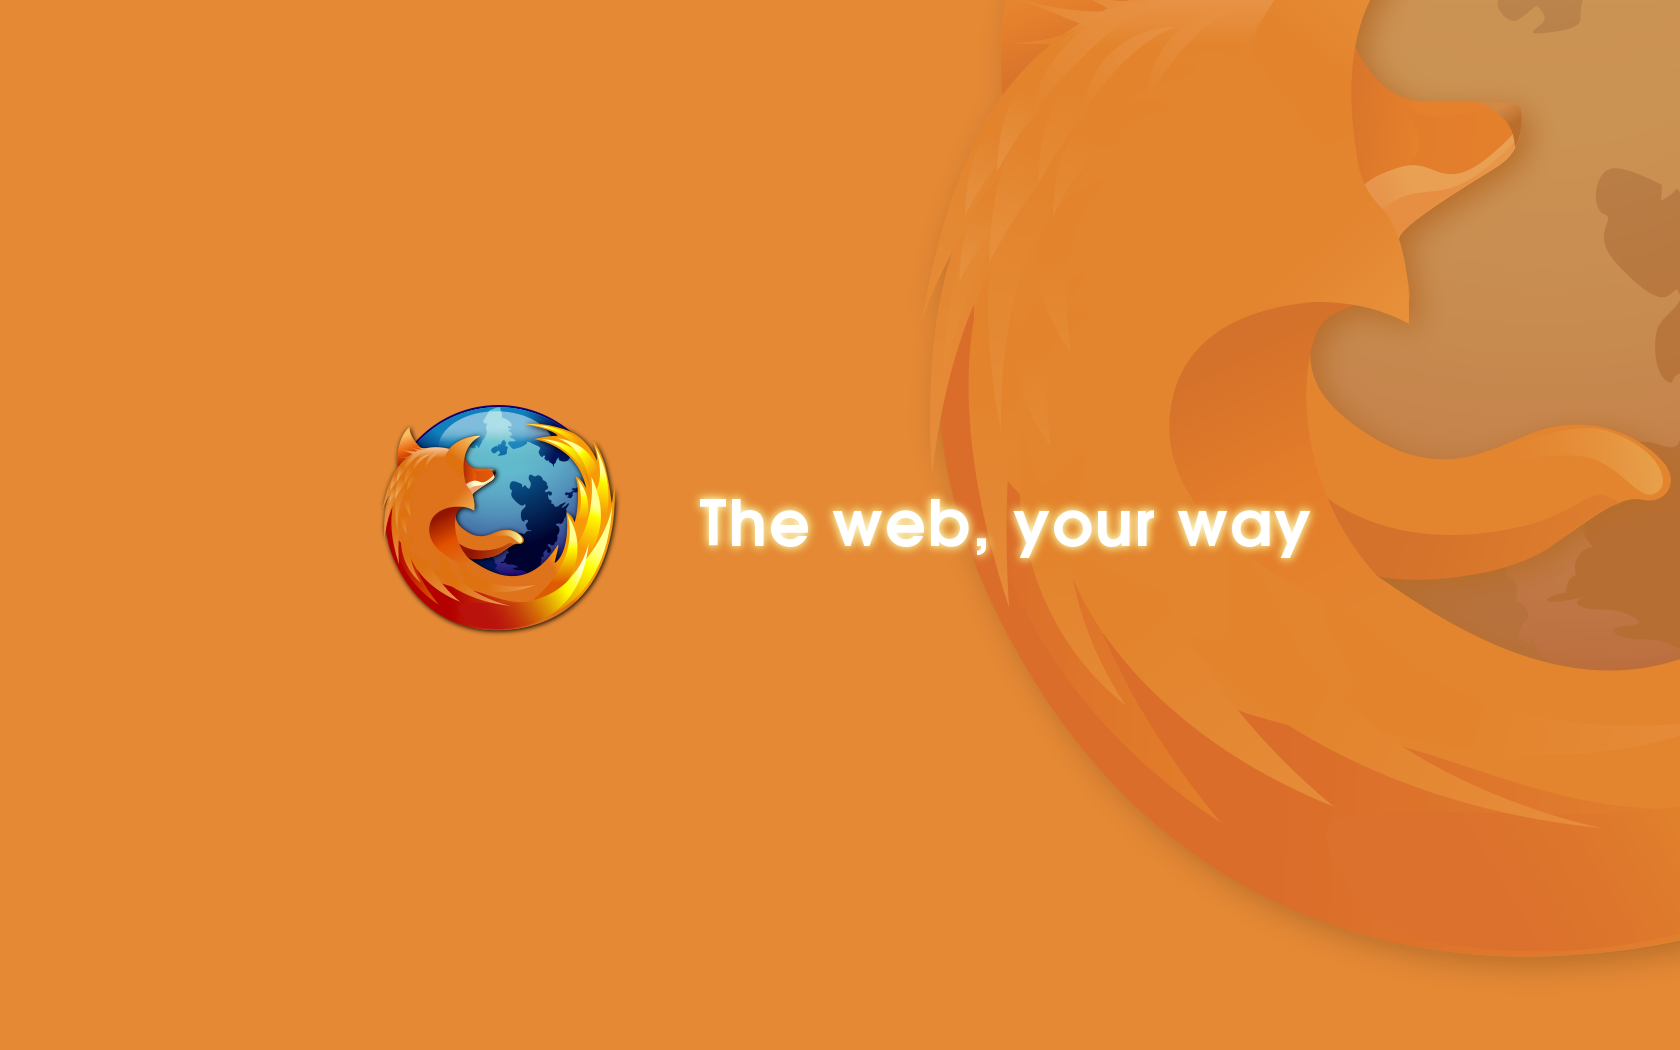 Firefox Wallpaper Set 5 Awesome Wallpapers